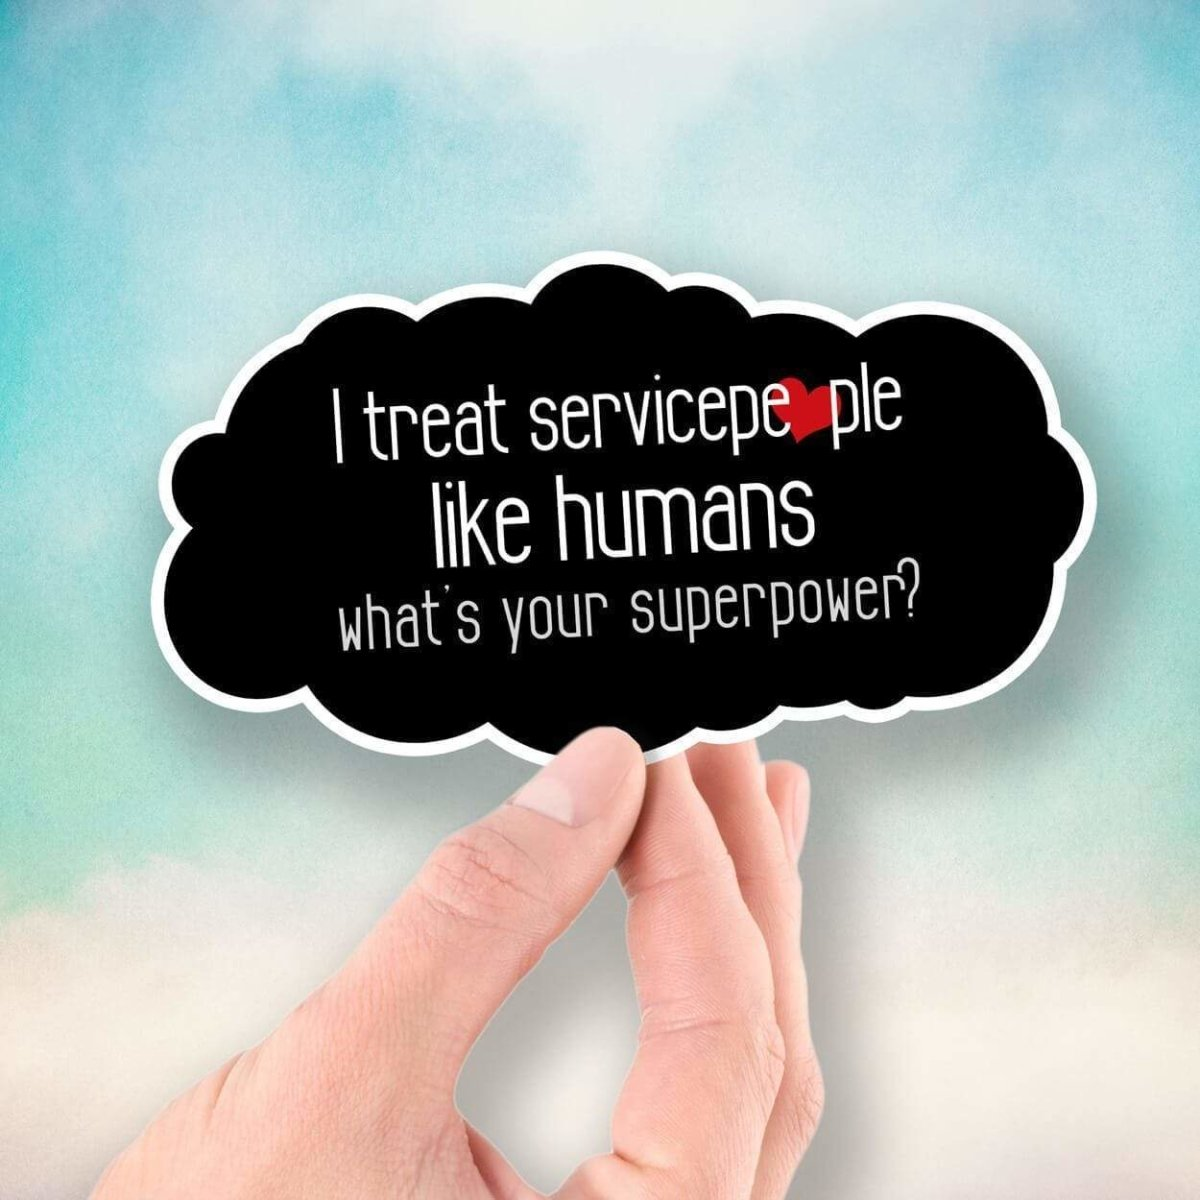 I Treat Servicepeople Like Humans - What's Your Superpower? - Vinyl Sticker - Dan Pearce Sticker Shop